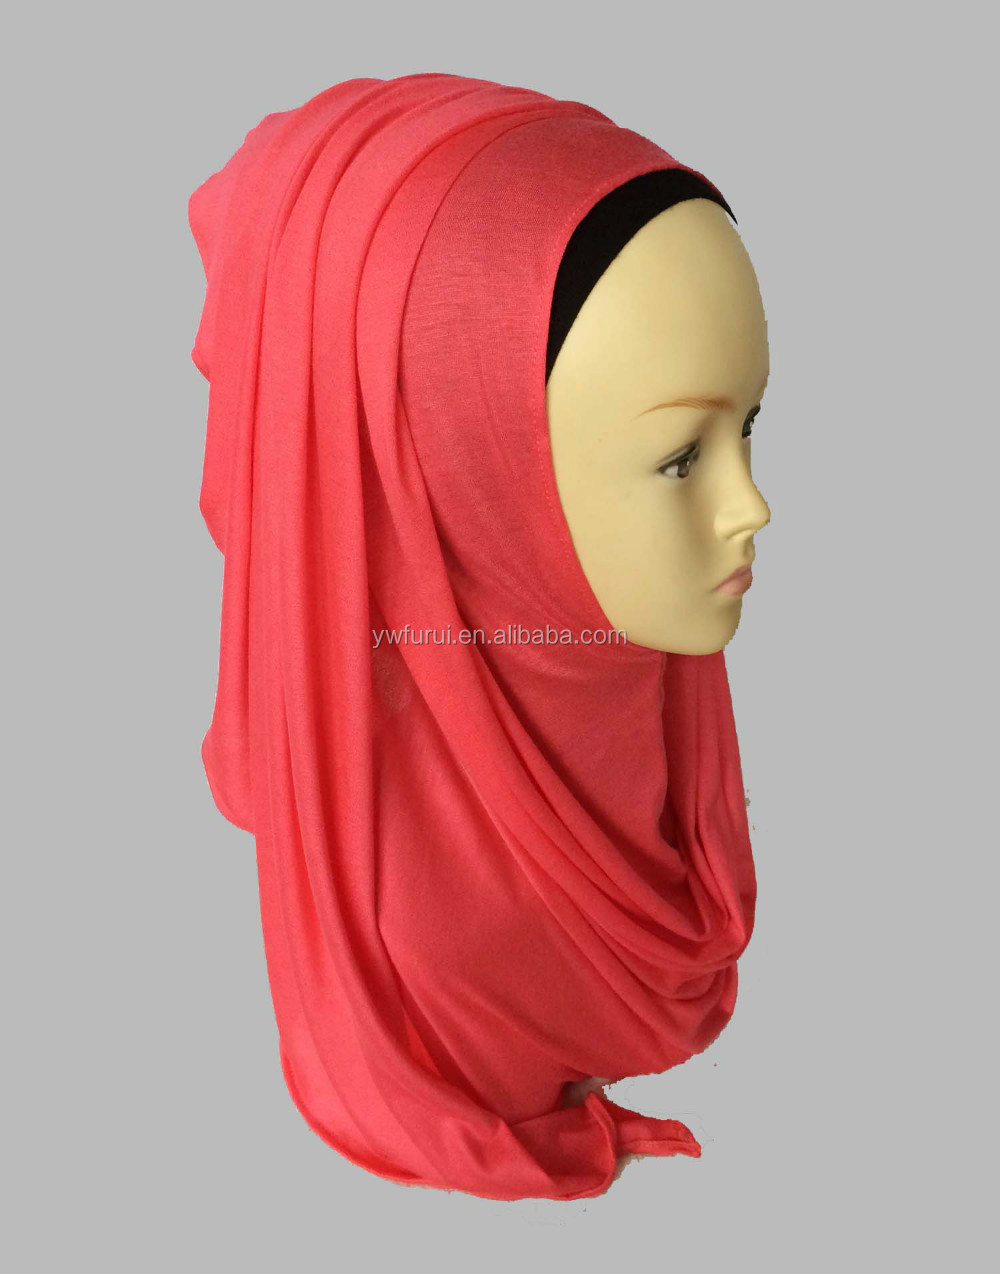 Fashion Beauty Women Muslim Jersey Instant Shawls Cotton Solid Color Scarf Plain Hijabs